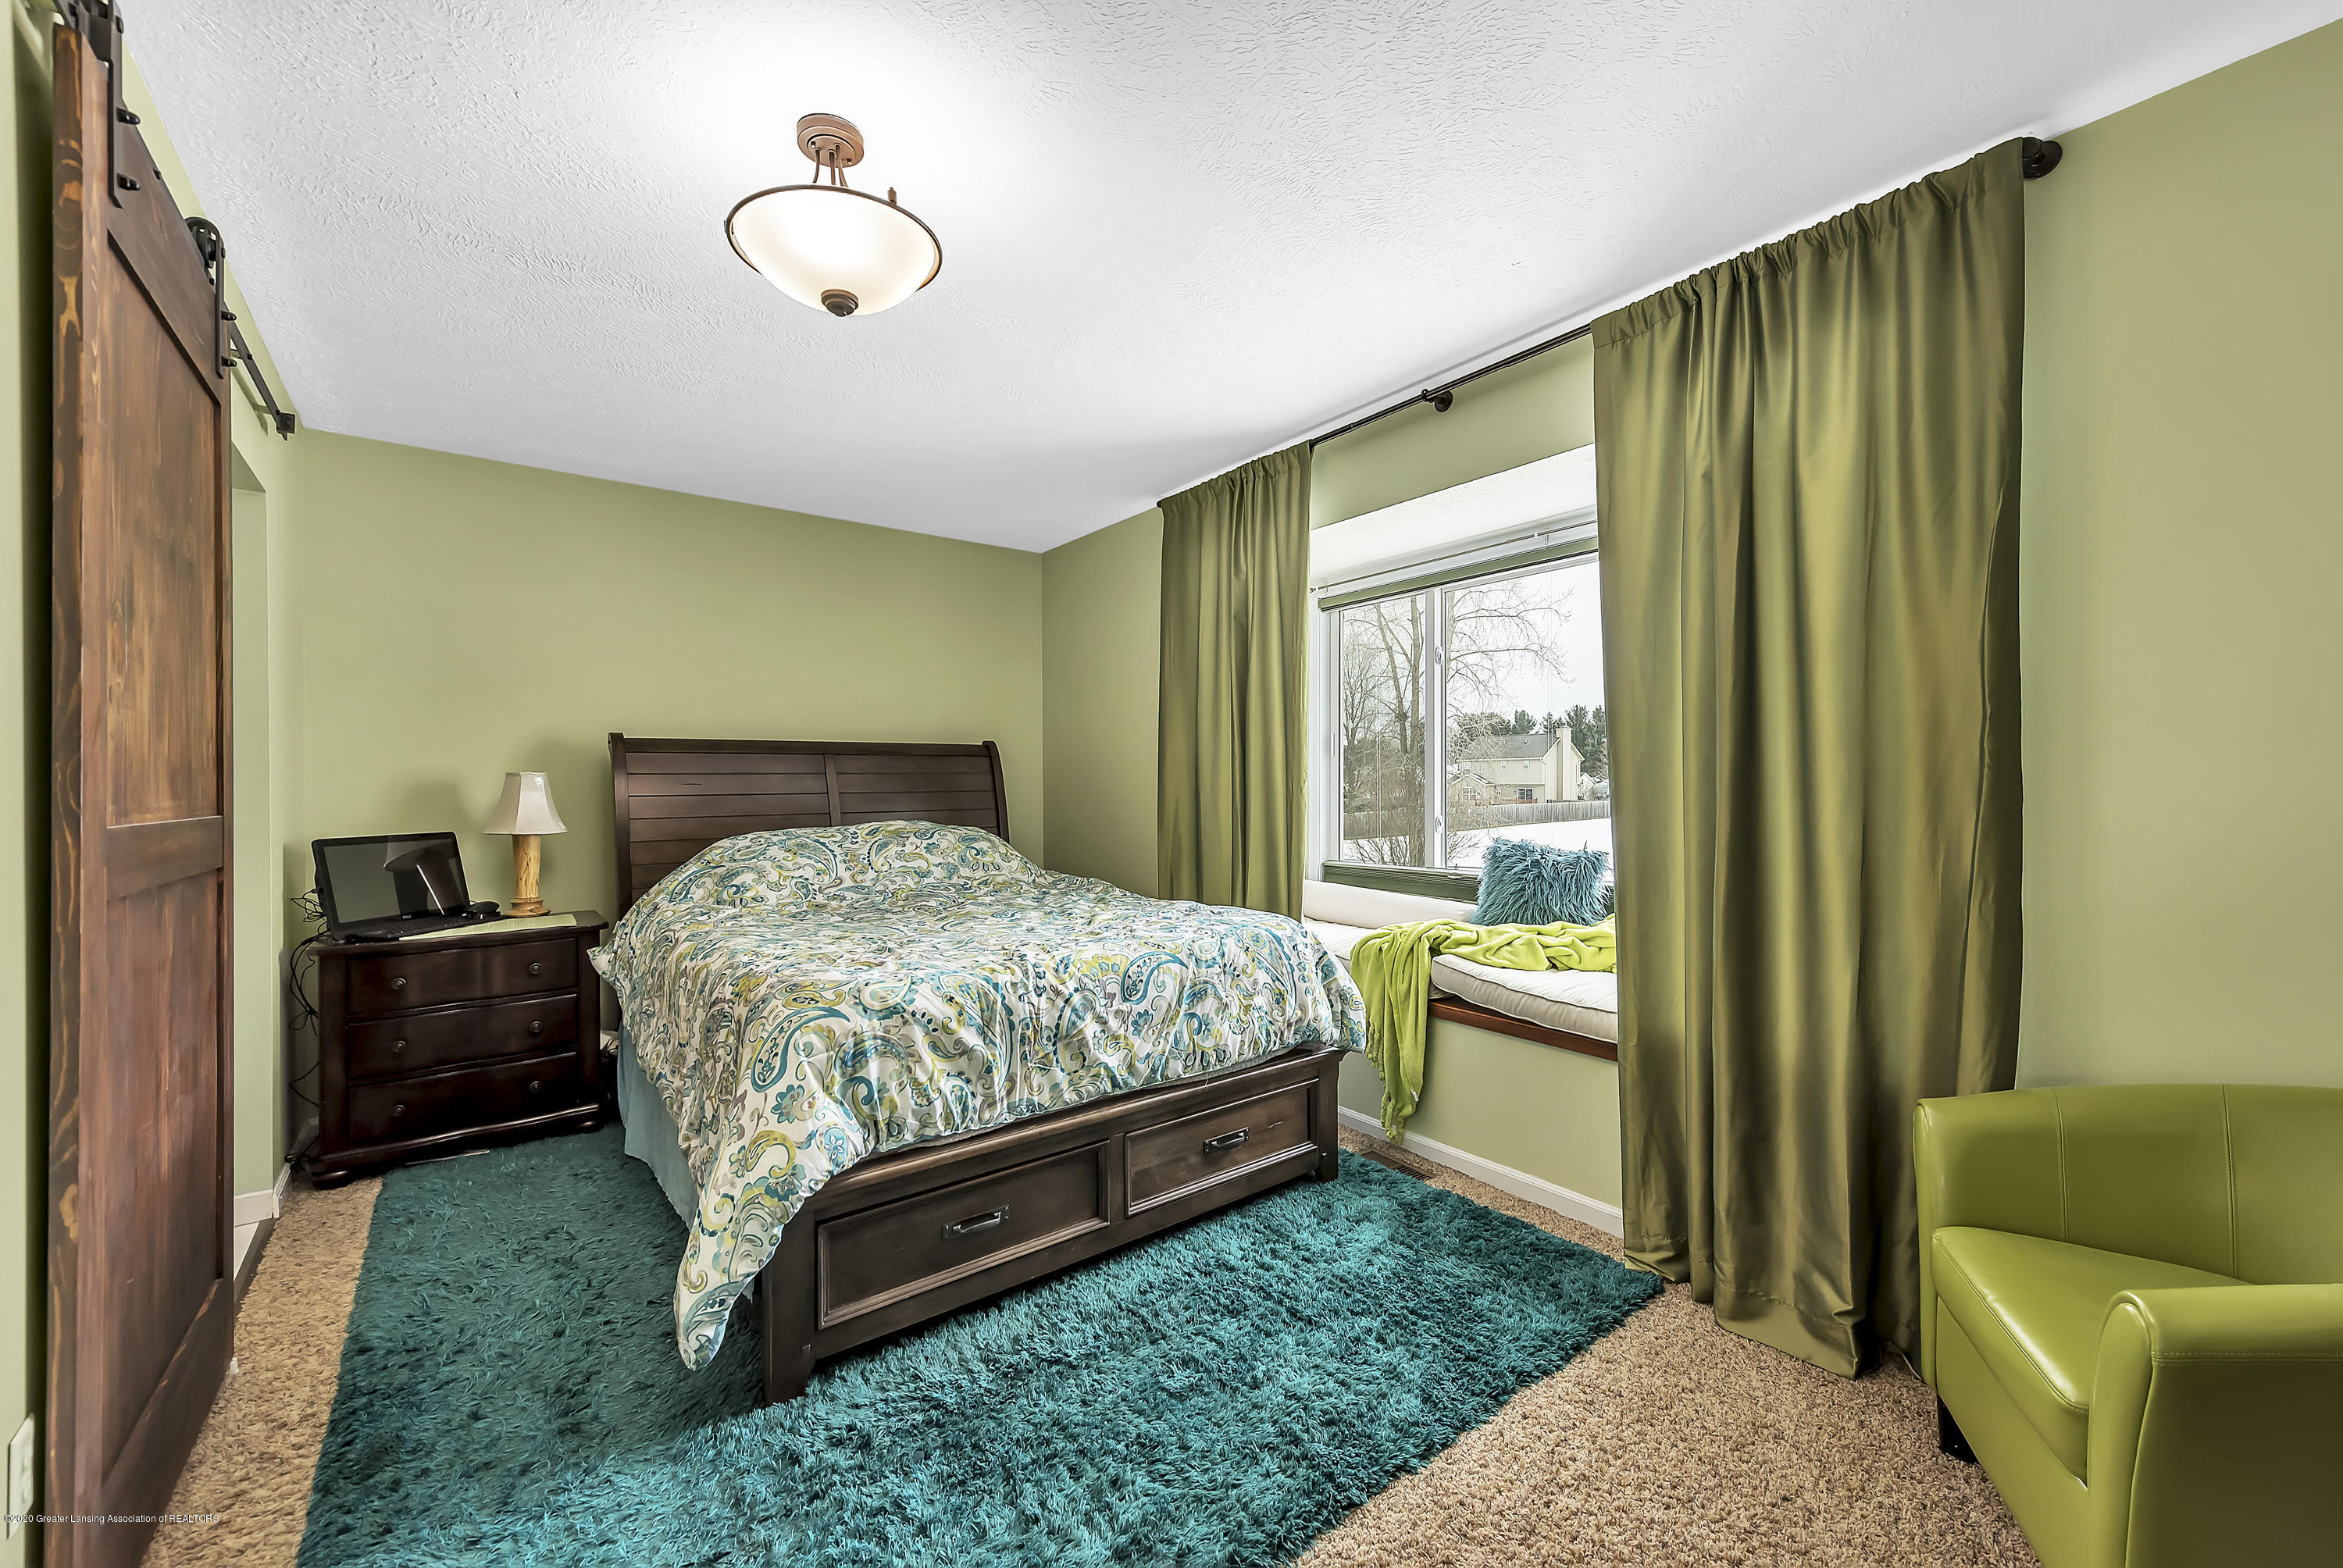 2450 Featherstone Dr - 2450-Featherstone-Dr-WindowStill-Real-Es - 19